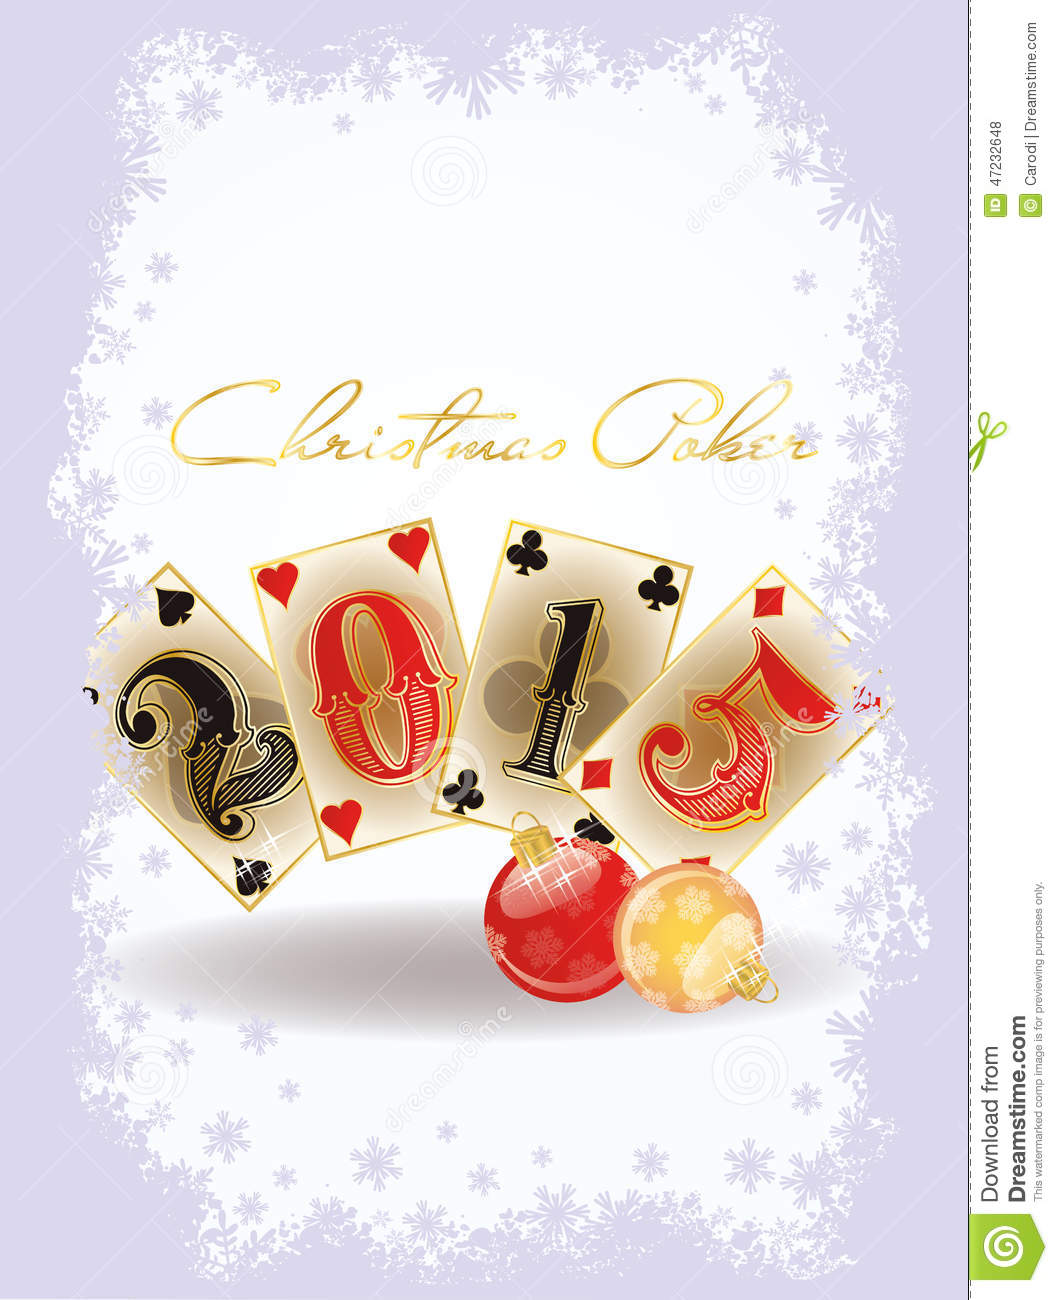 Happy Christmas casino card, vector